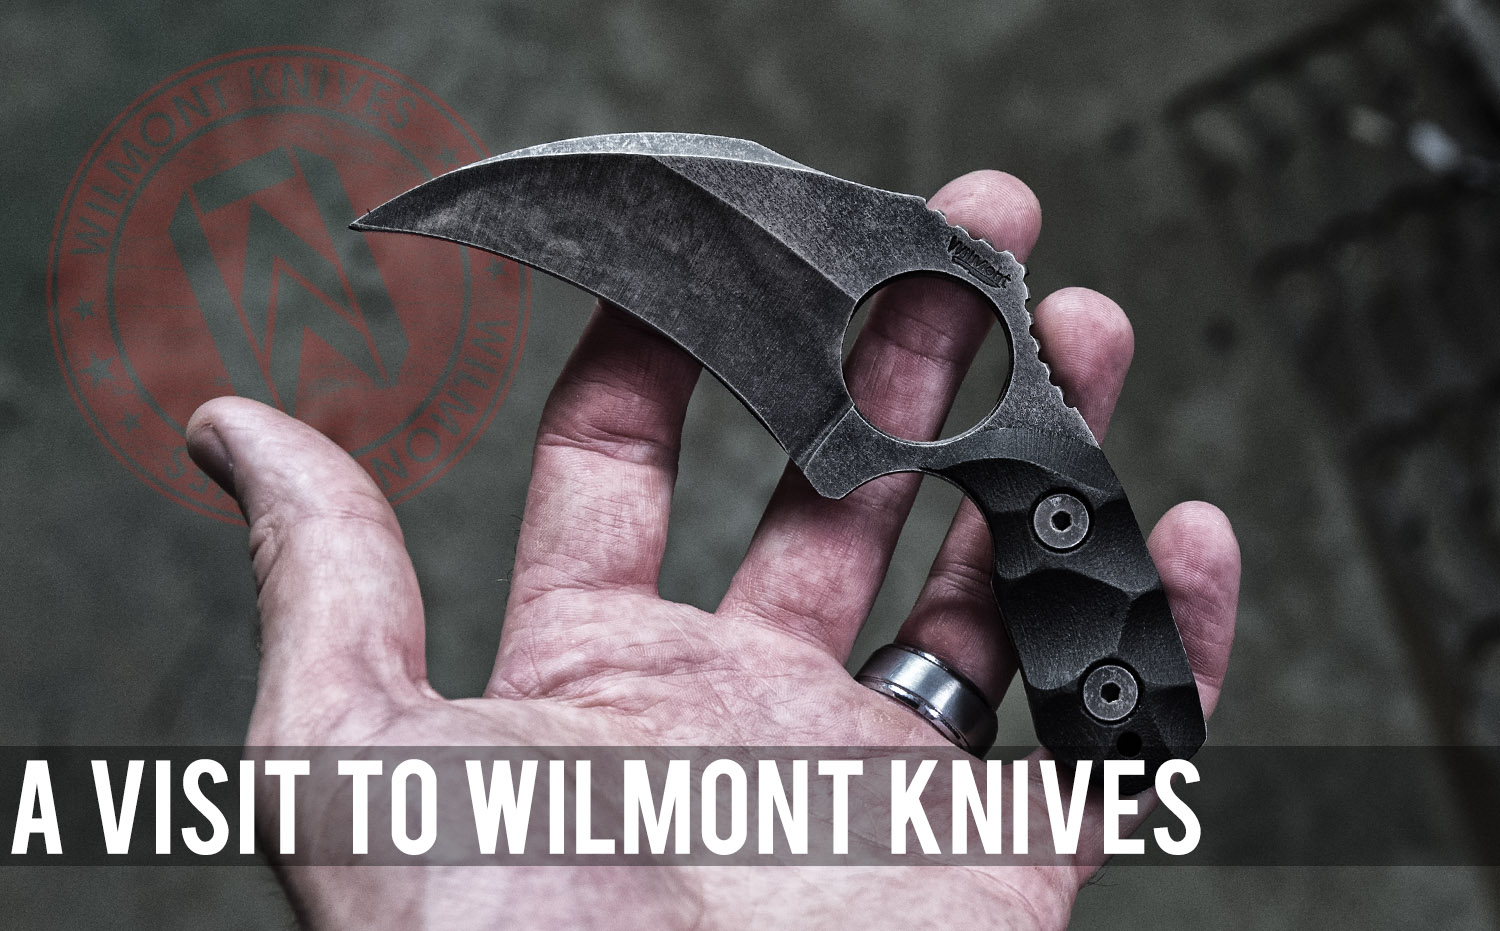 wilmont knives